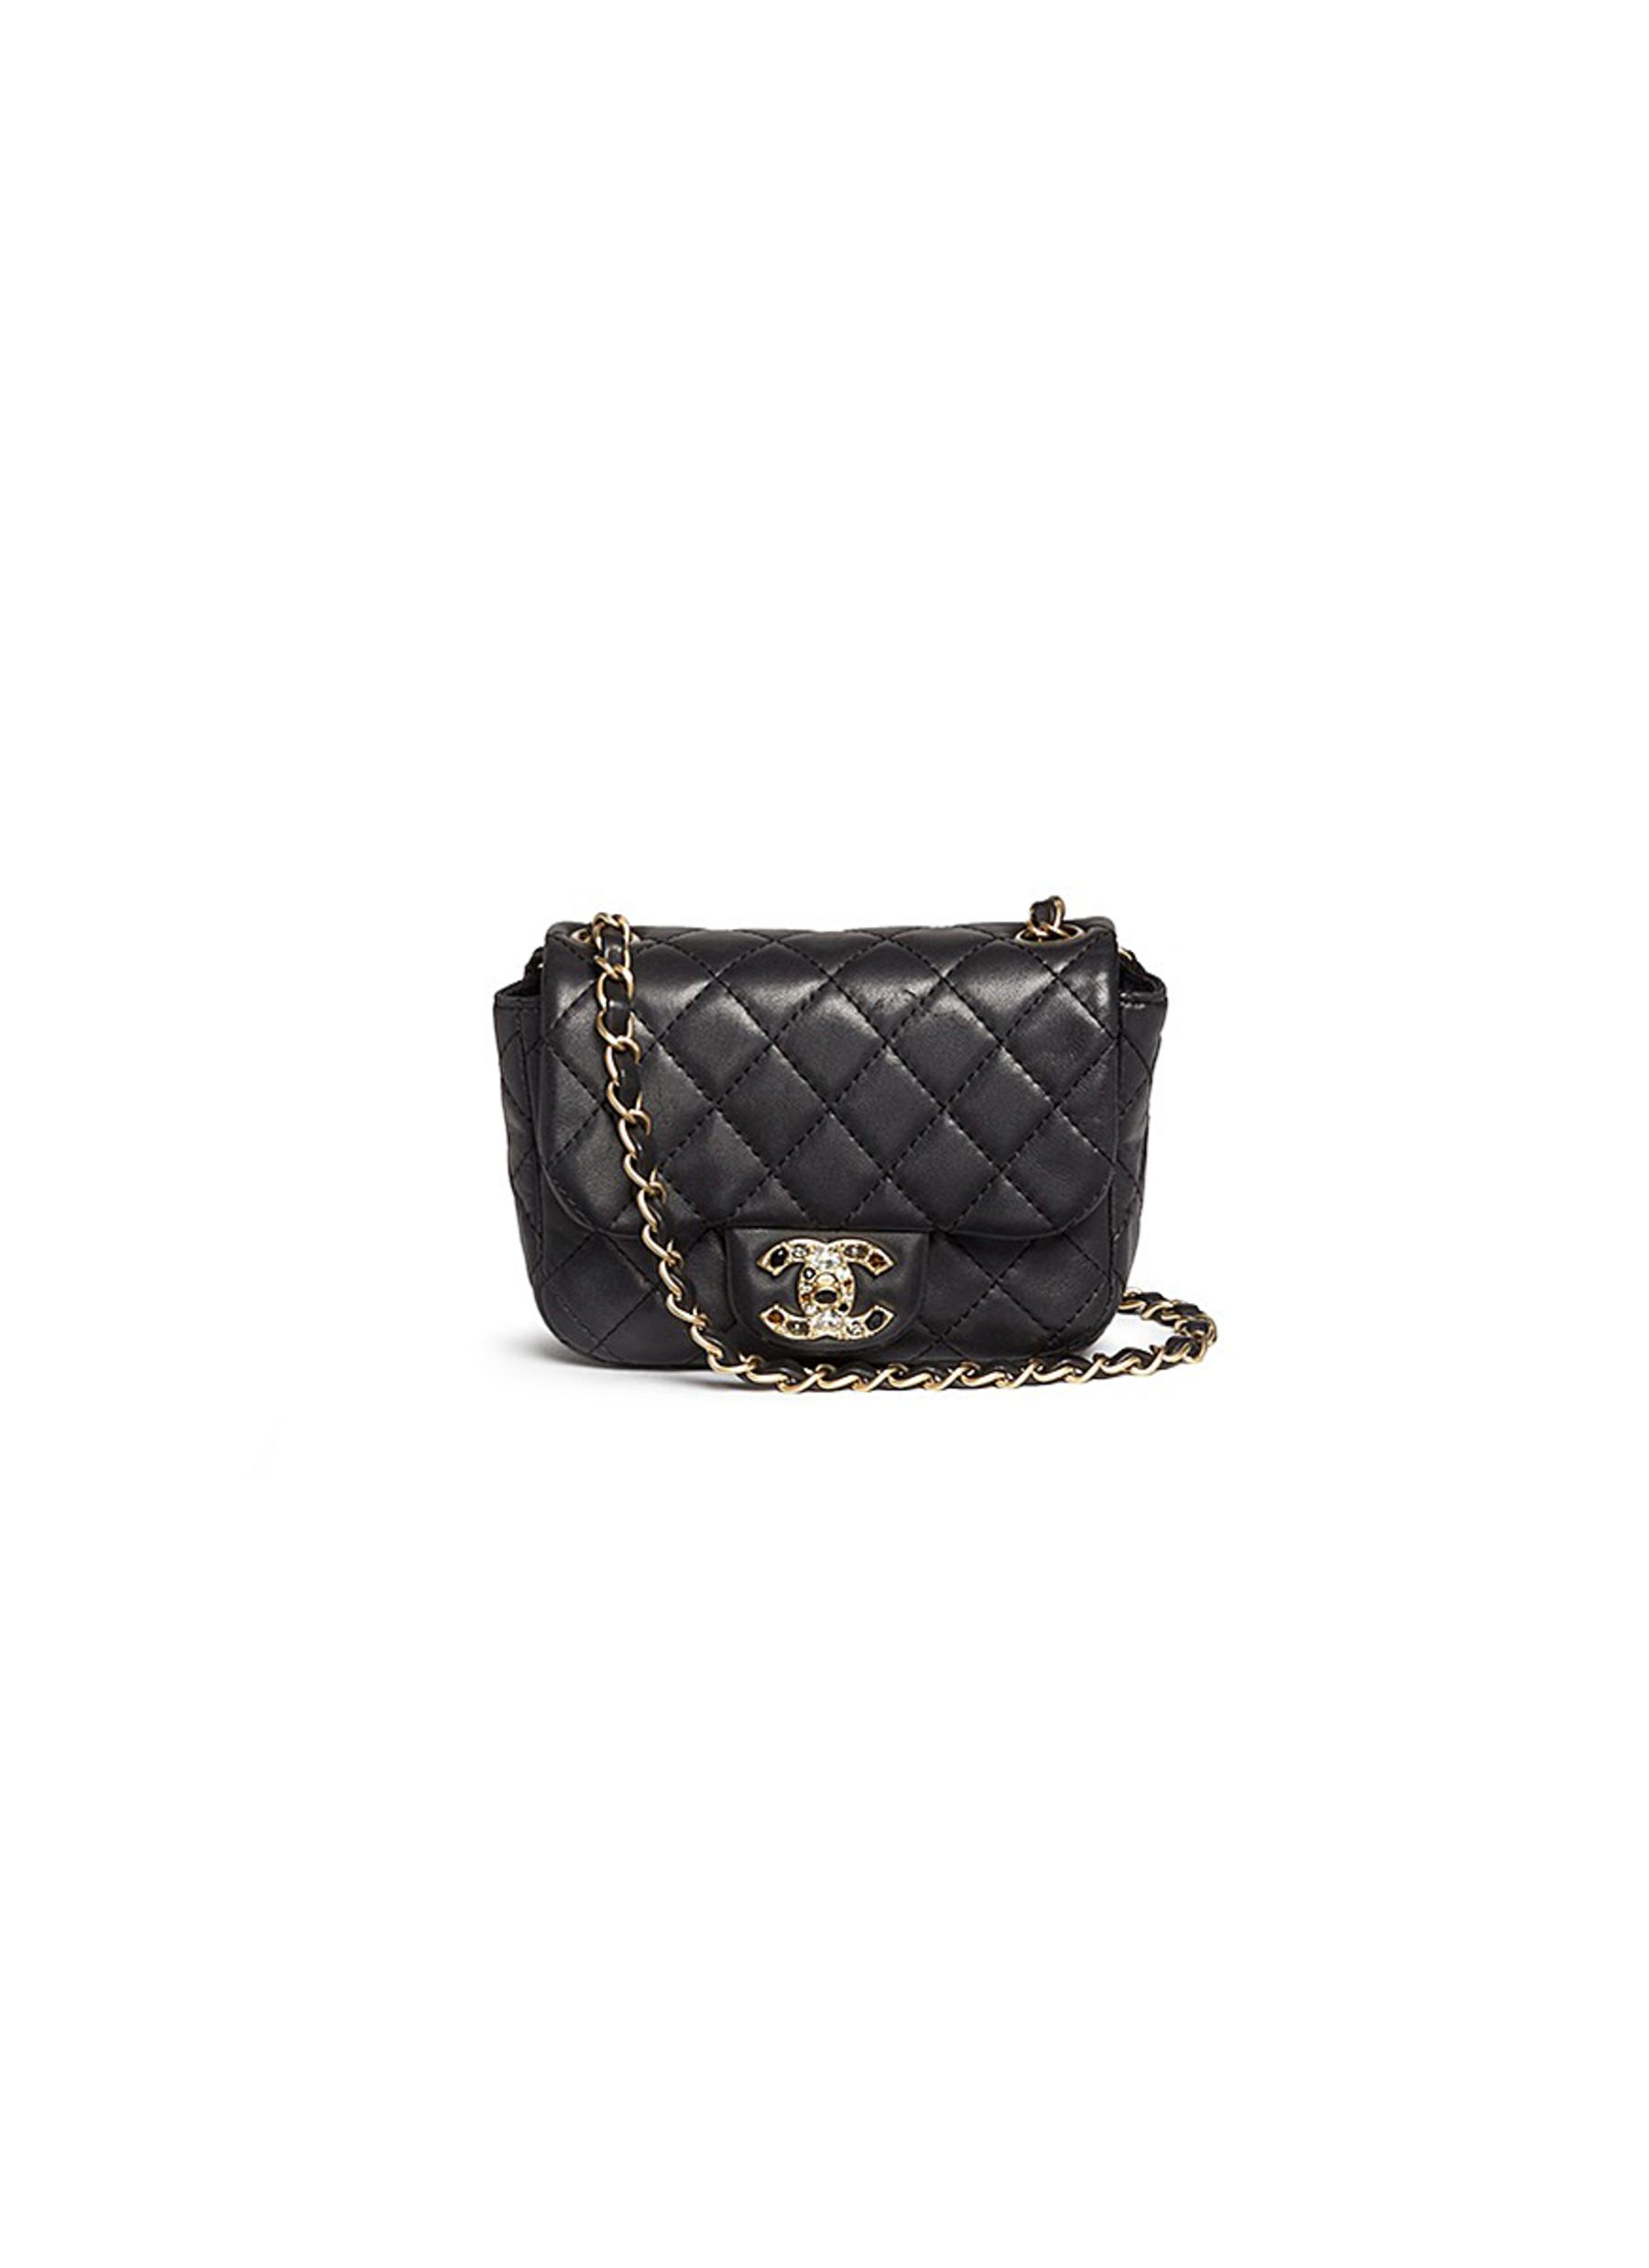 Mini crystal lock quilted leather bag by Vintage Chanel